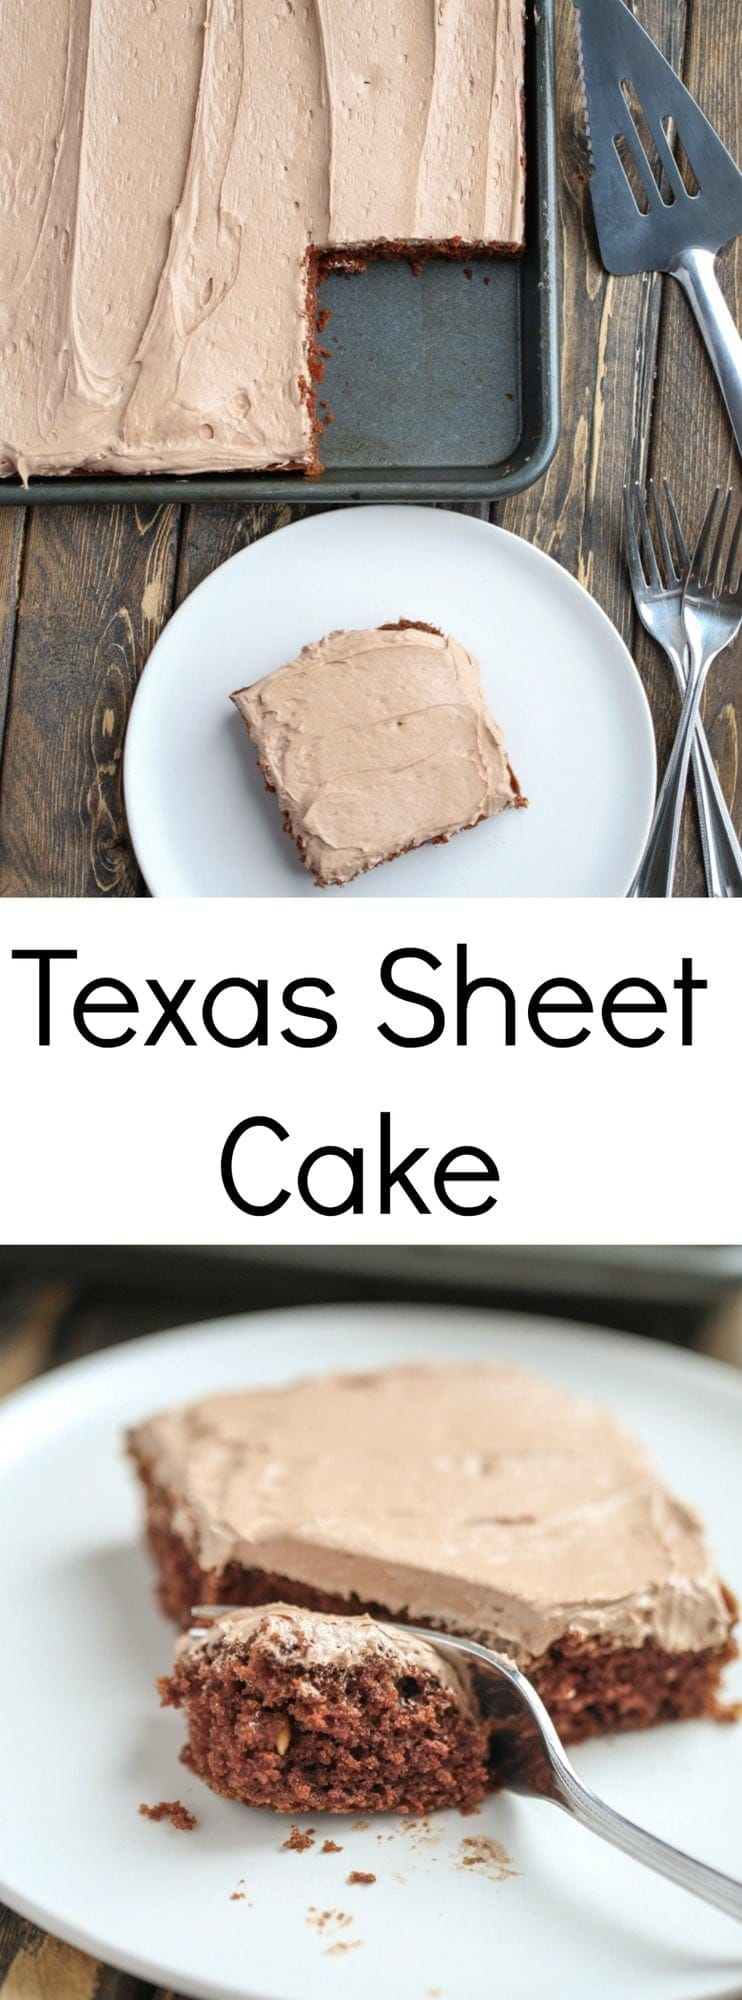 This Texas Sheet Cake is chocolate heaven! It is the perfect cake for a crowd, too.